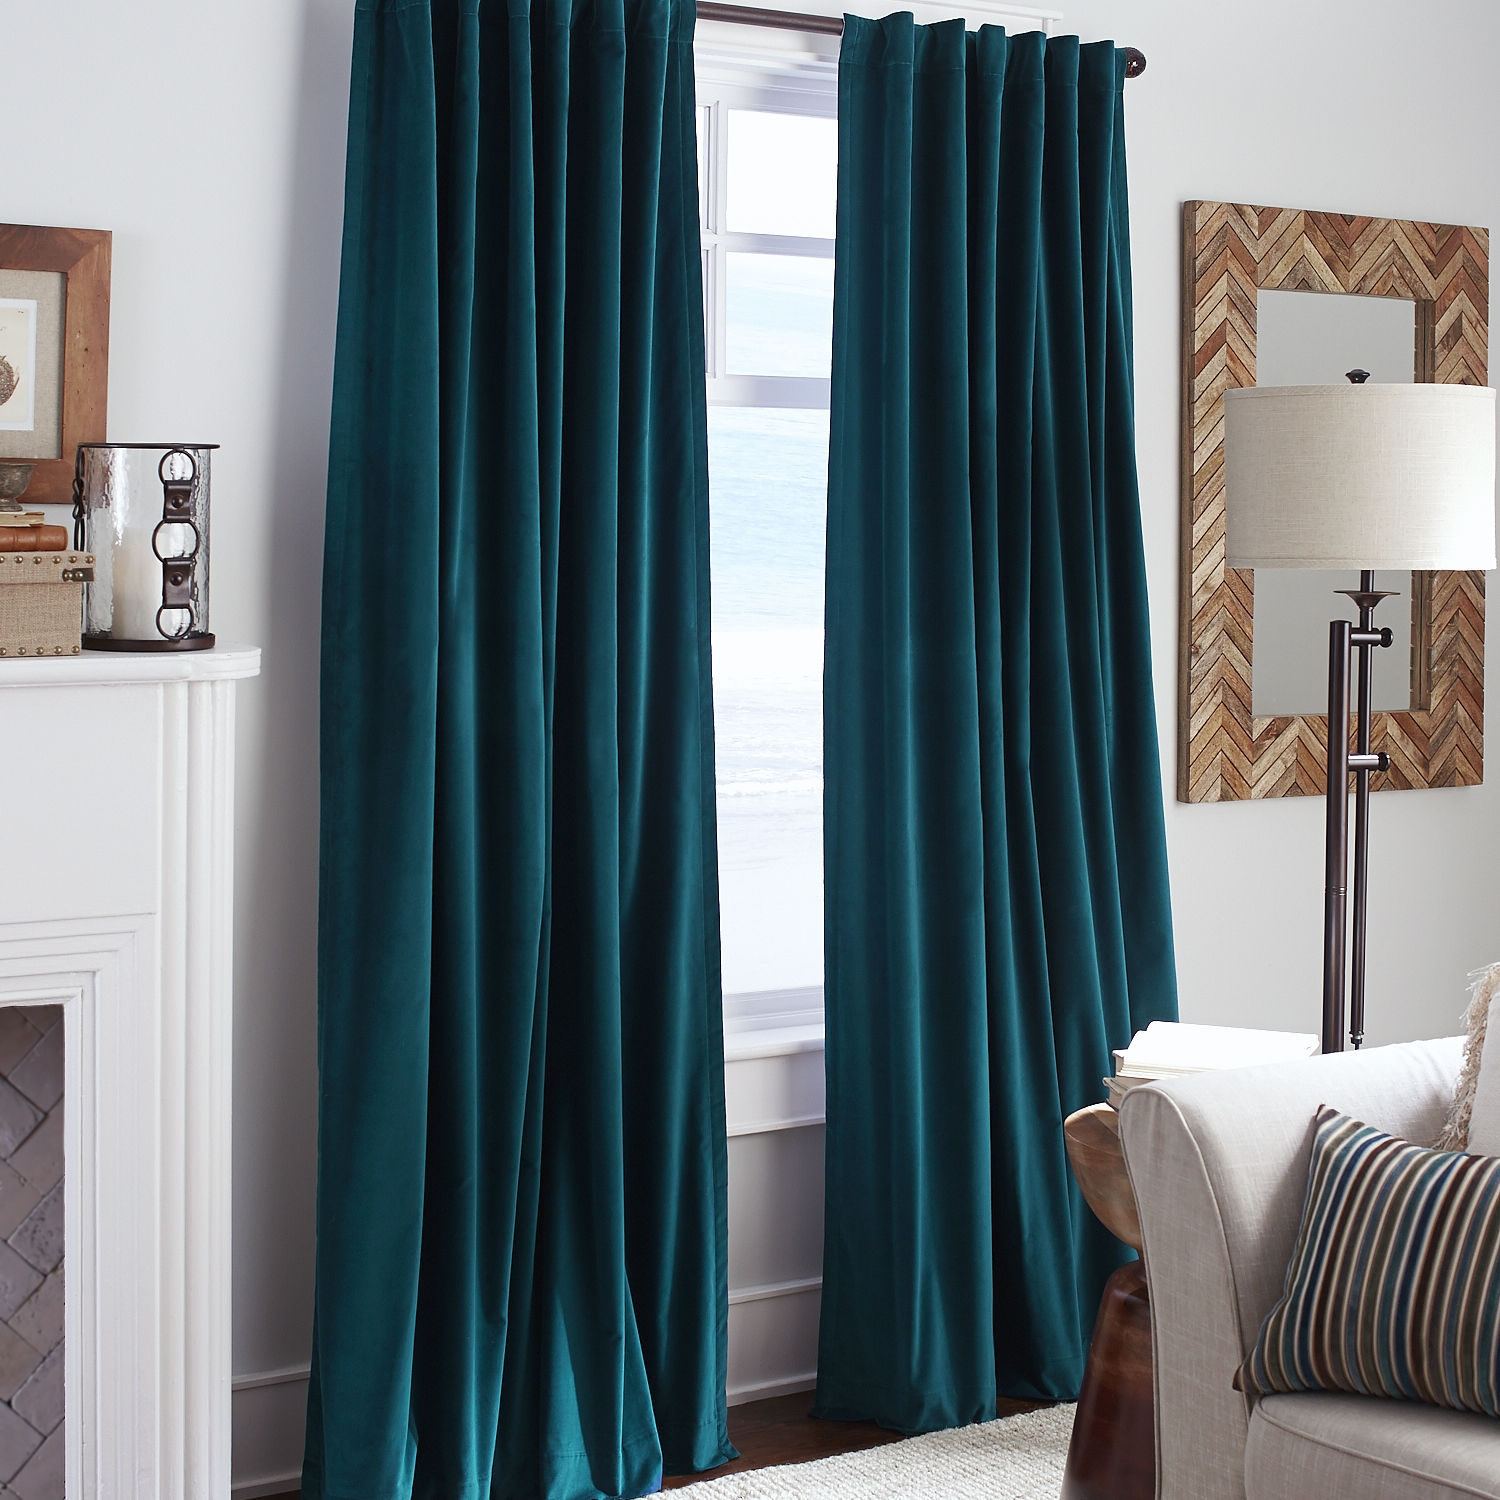 15 Best Collection of Dark Brown Velvet Curtains  Curtain Ideas